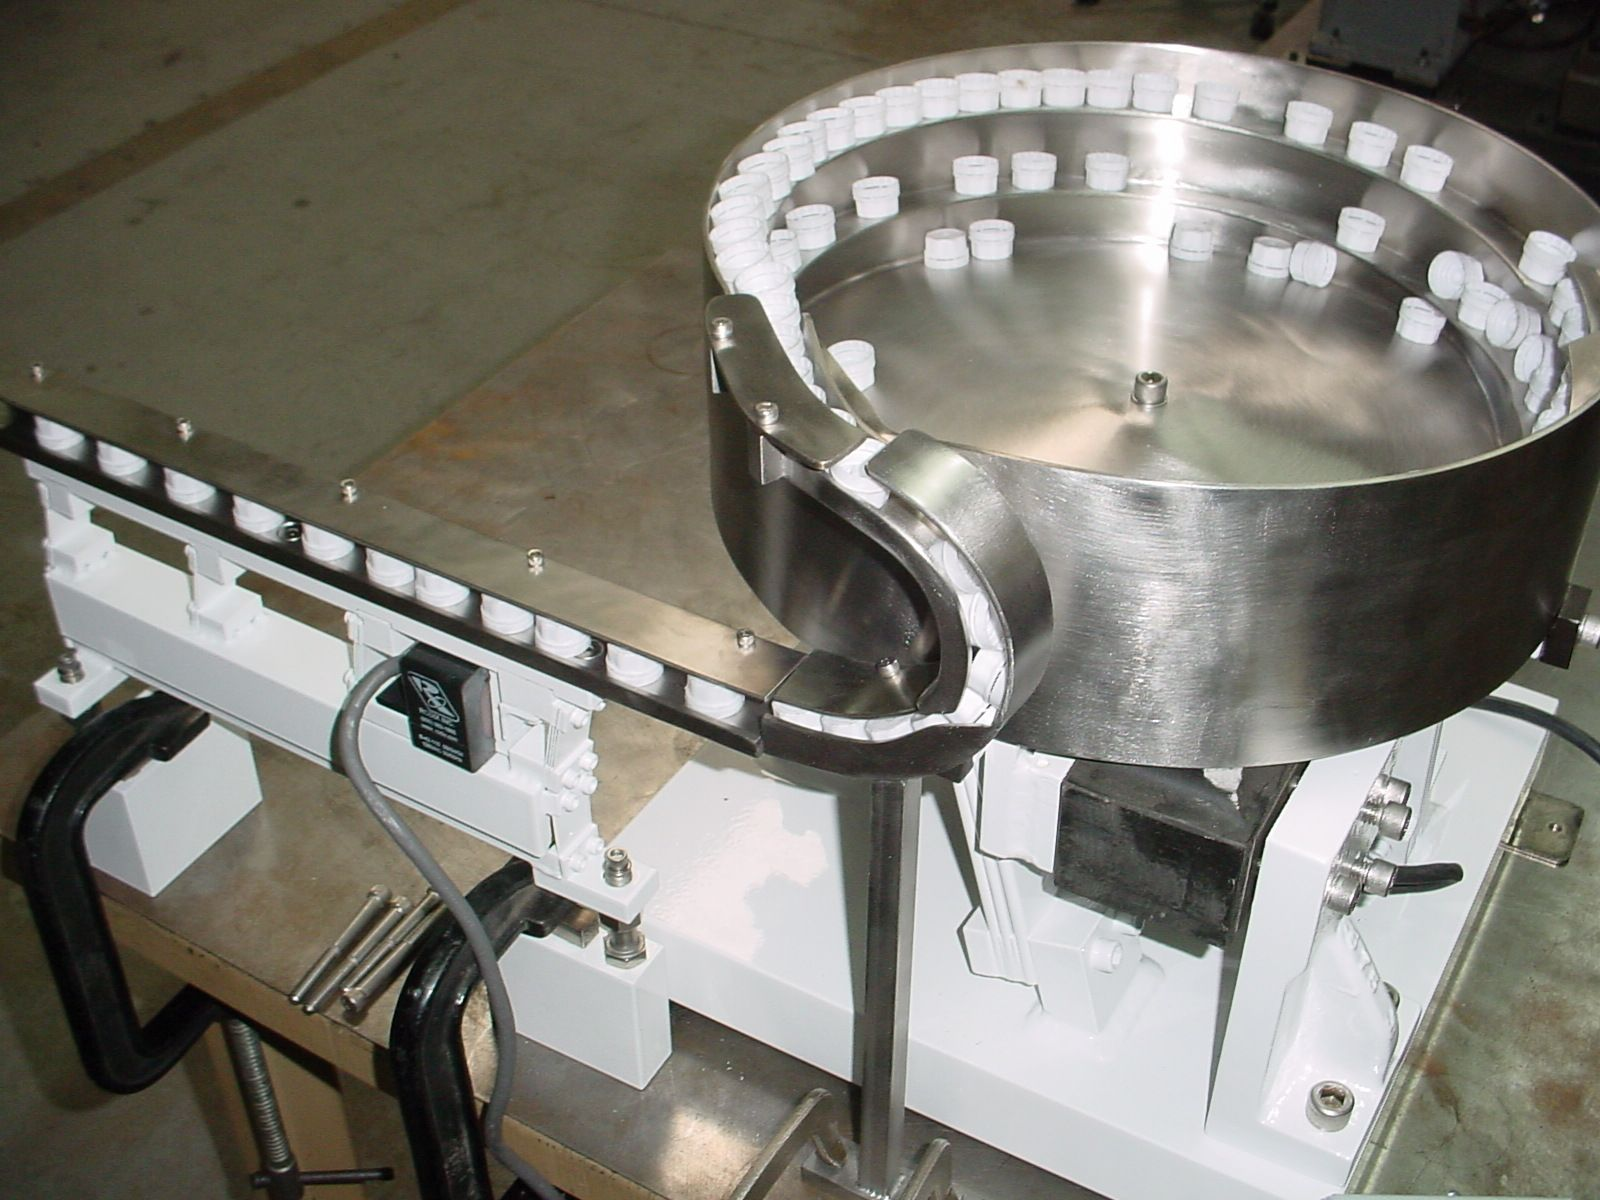 vibration product vibrating direct on com feeder sale alibaba buy vibratory detail precision design factory bowl